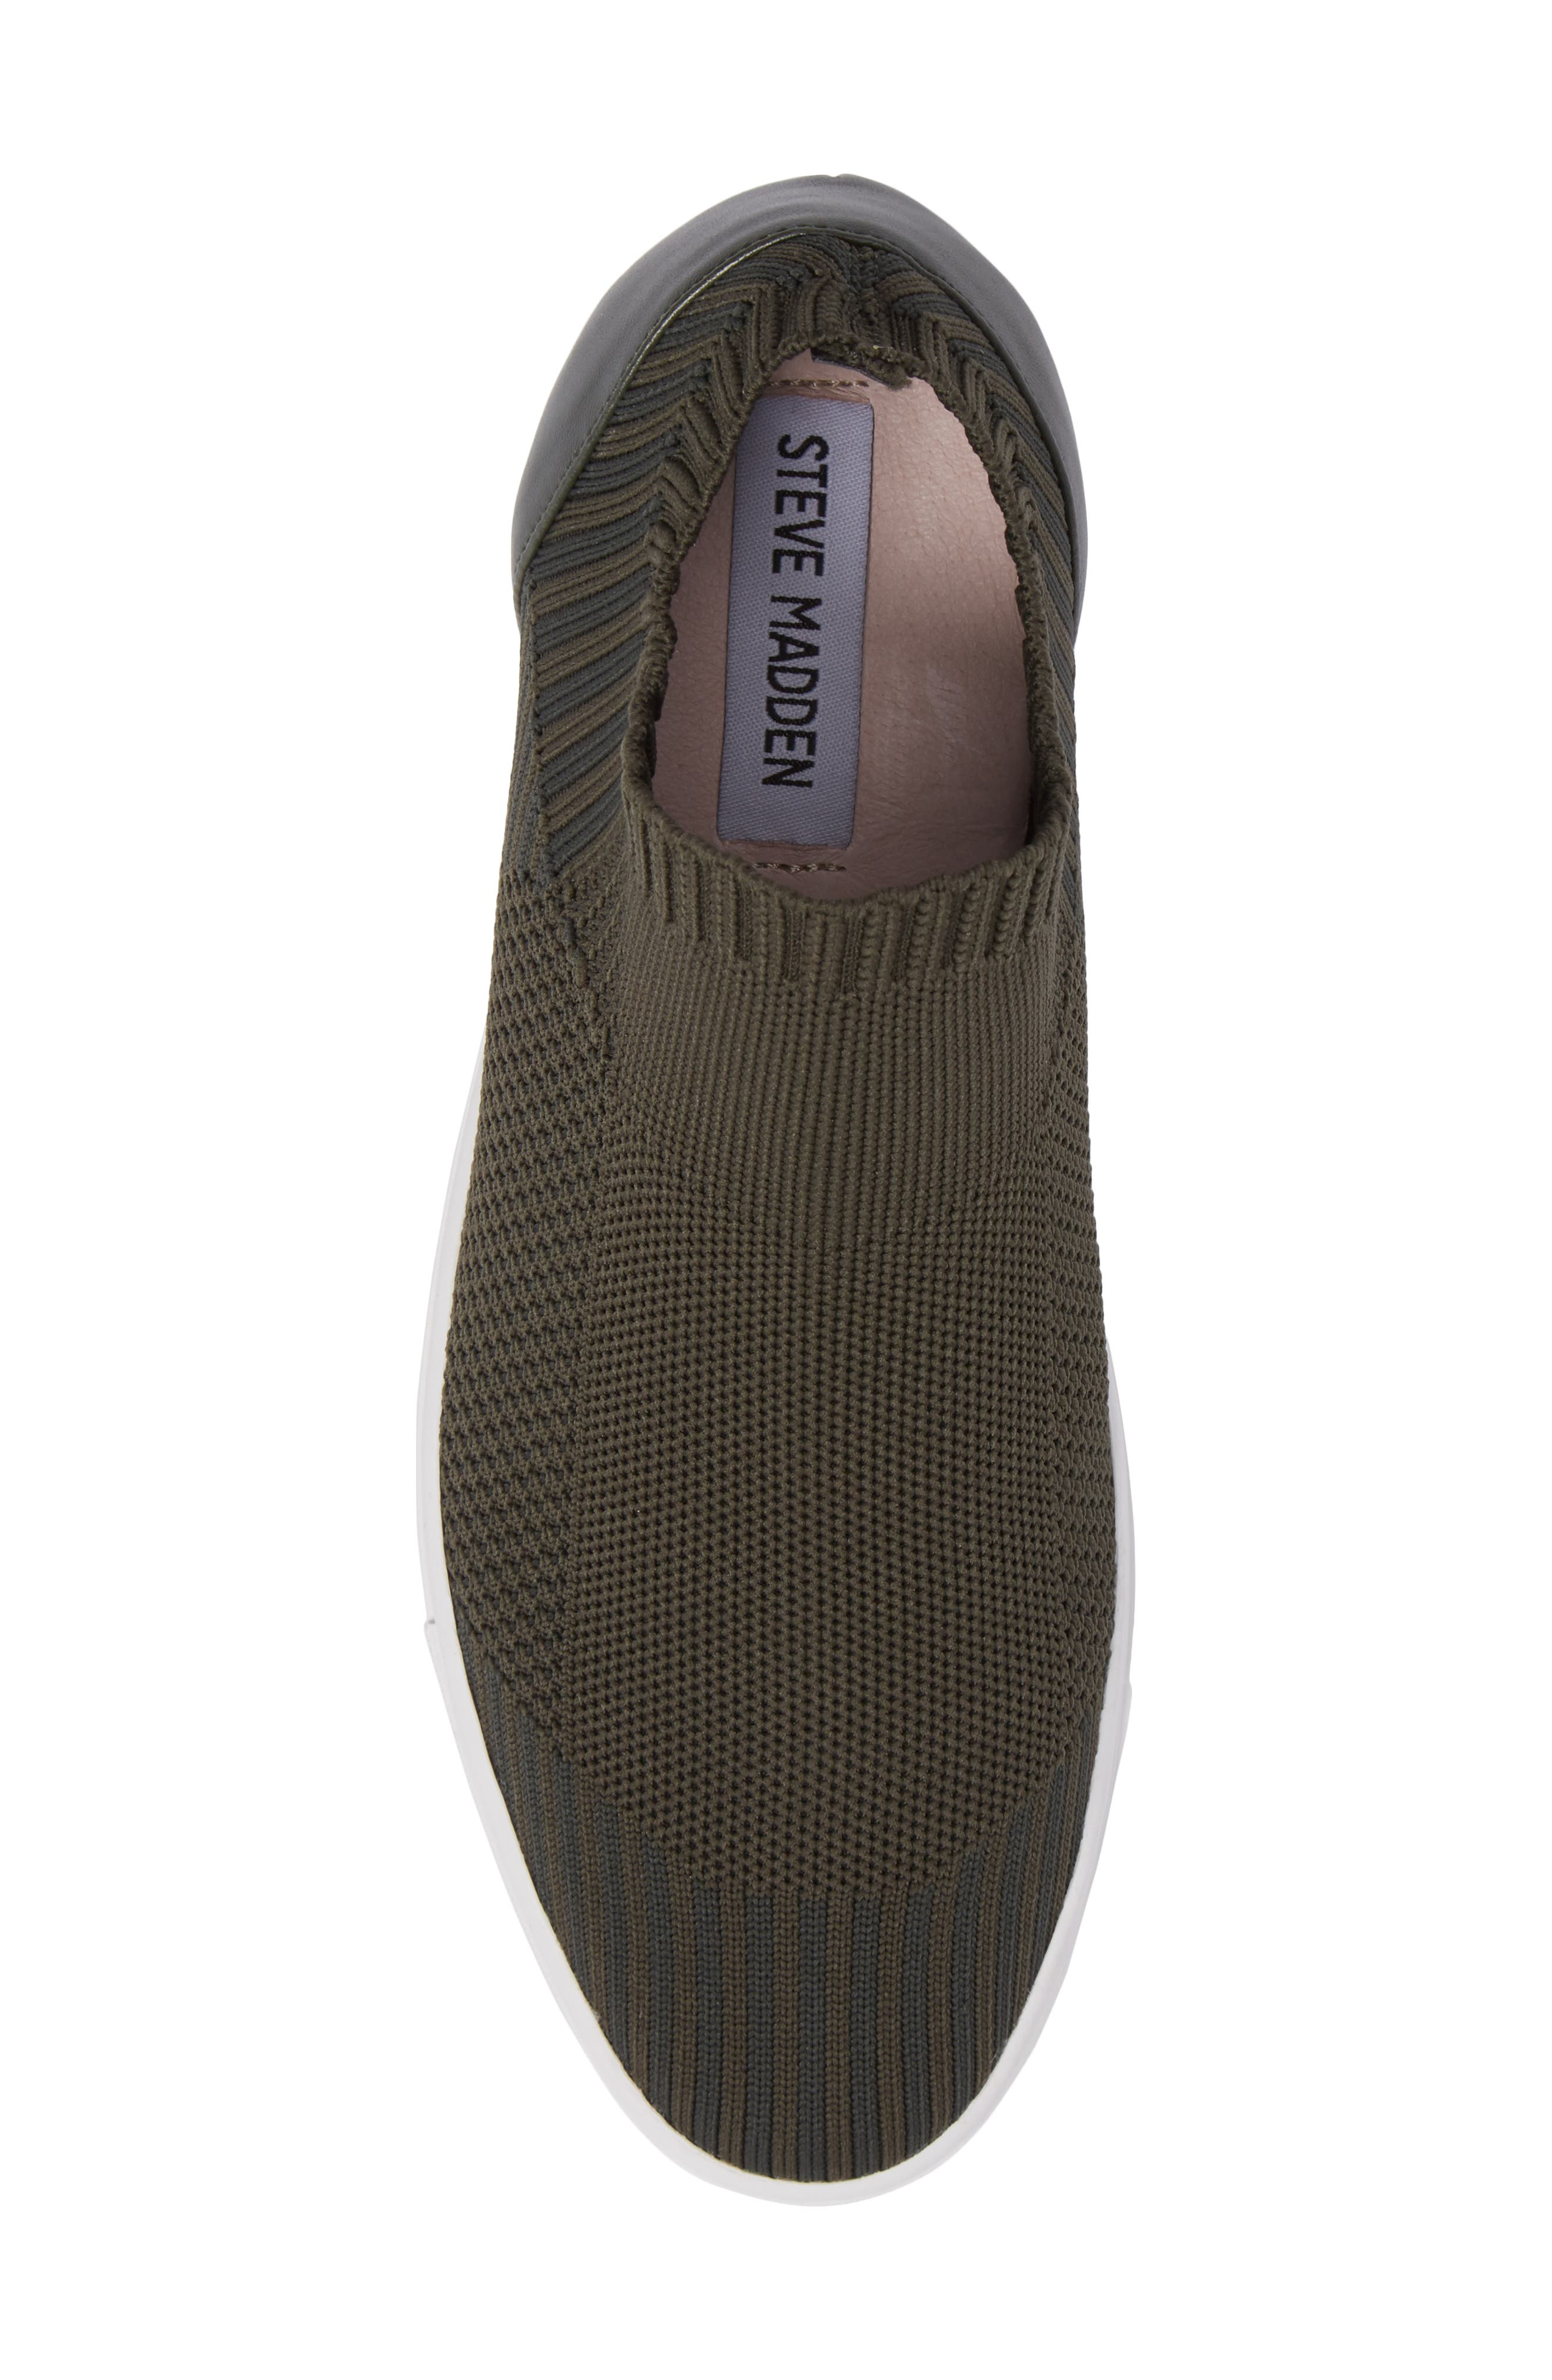 Sly Hidden Wedge Knit Sneaker,                             Alternate thumbnail 6, color,                             Olive Fabric